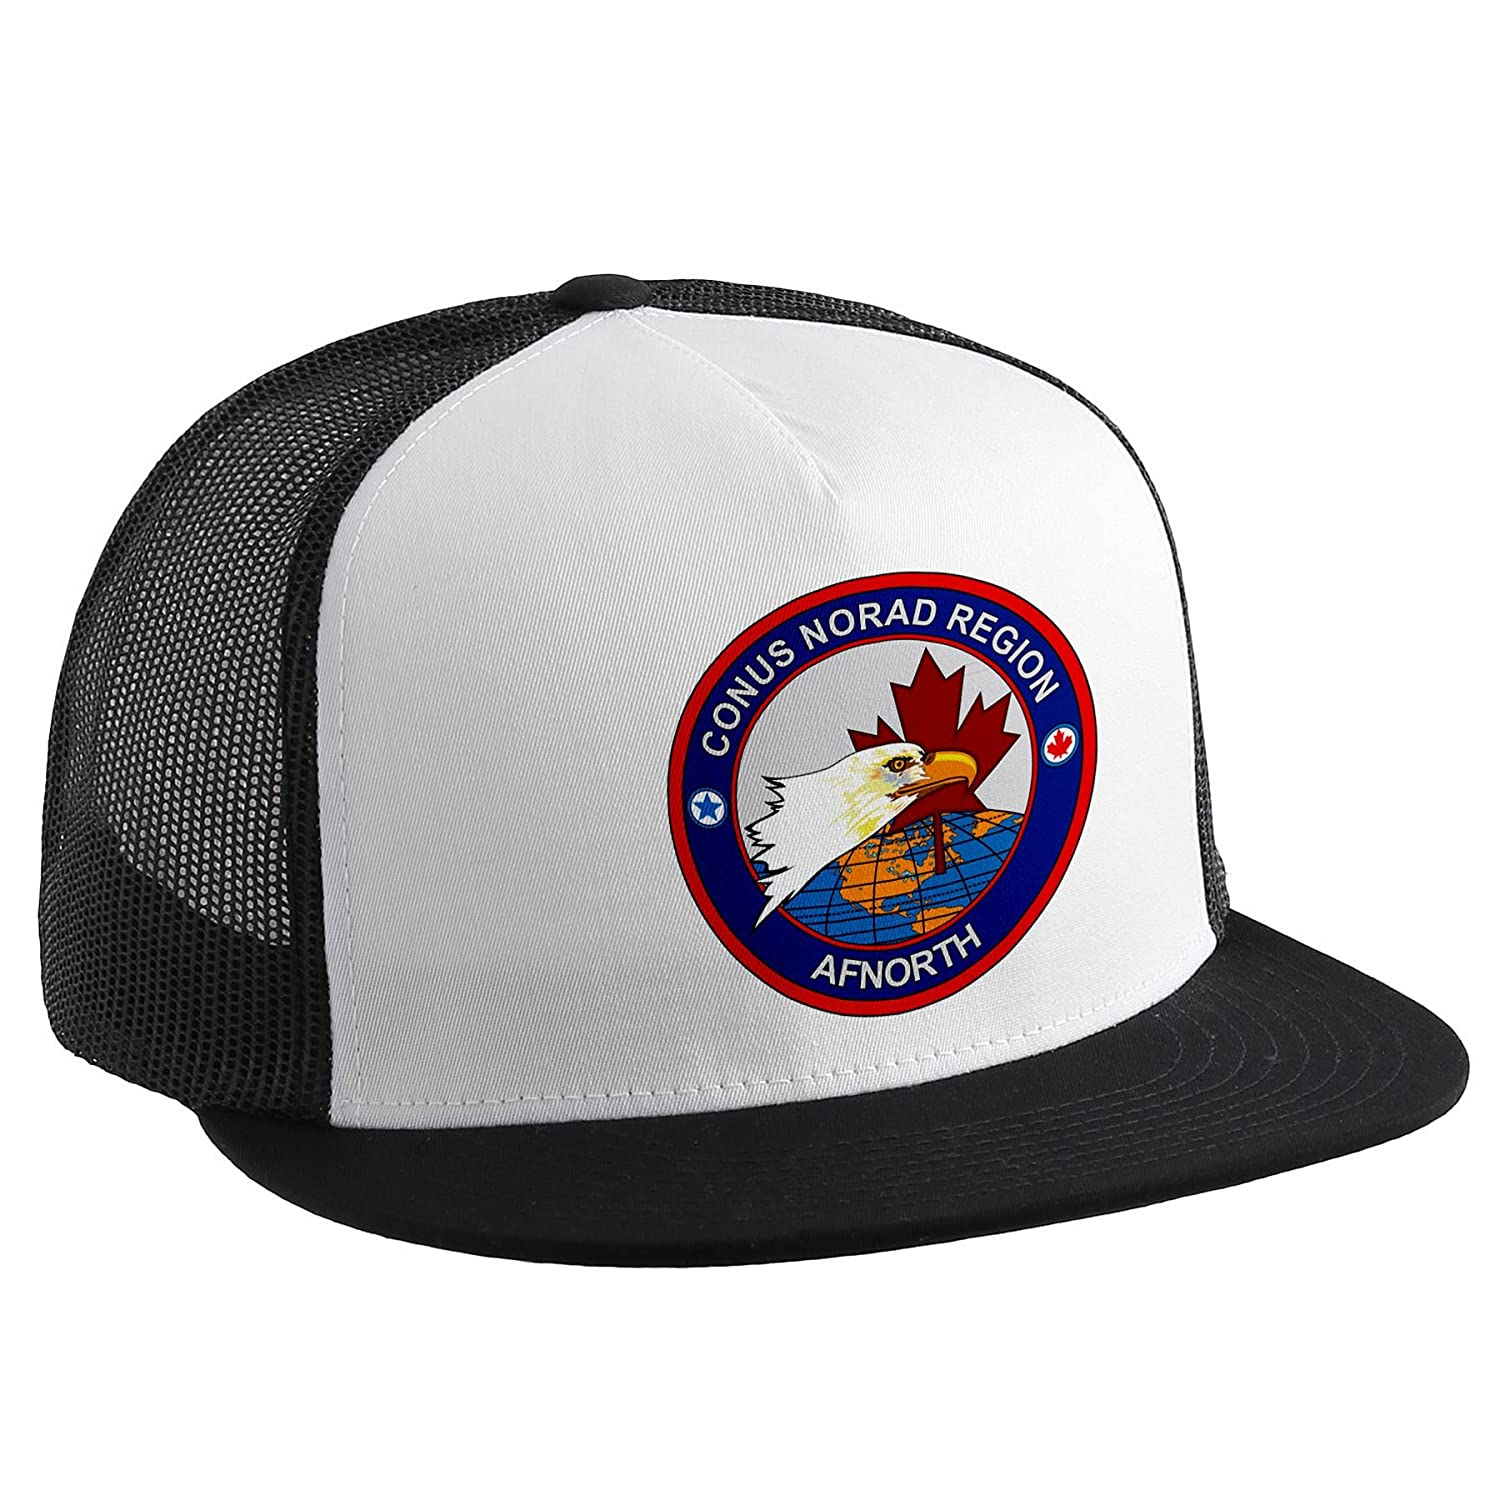 trucker-hat-with-air-force-continental-us-norad-conr-afnorth